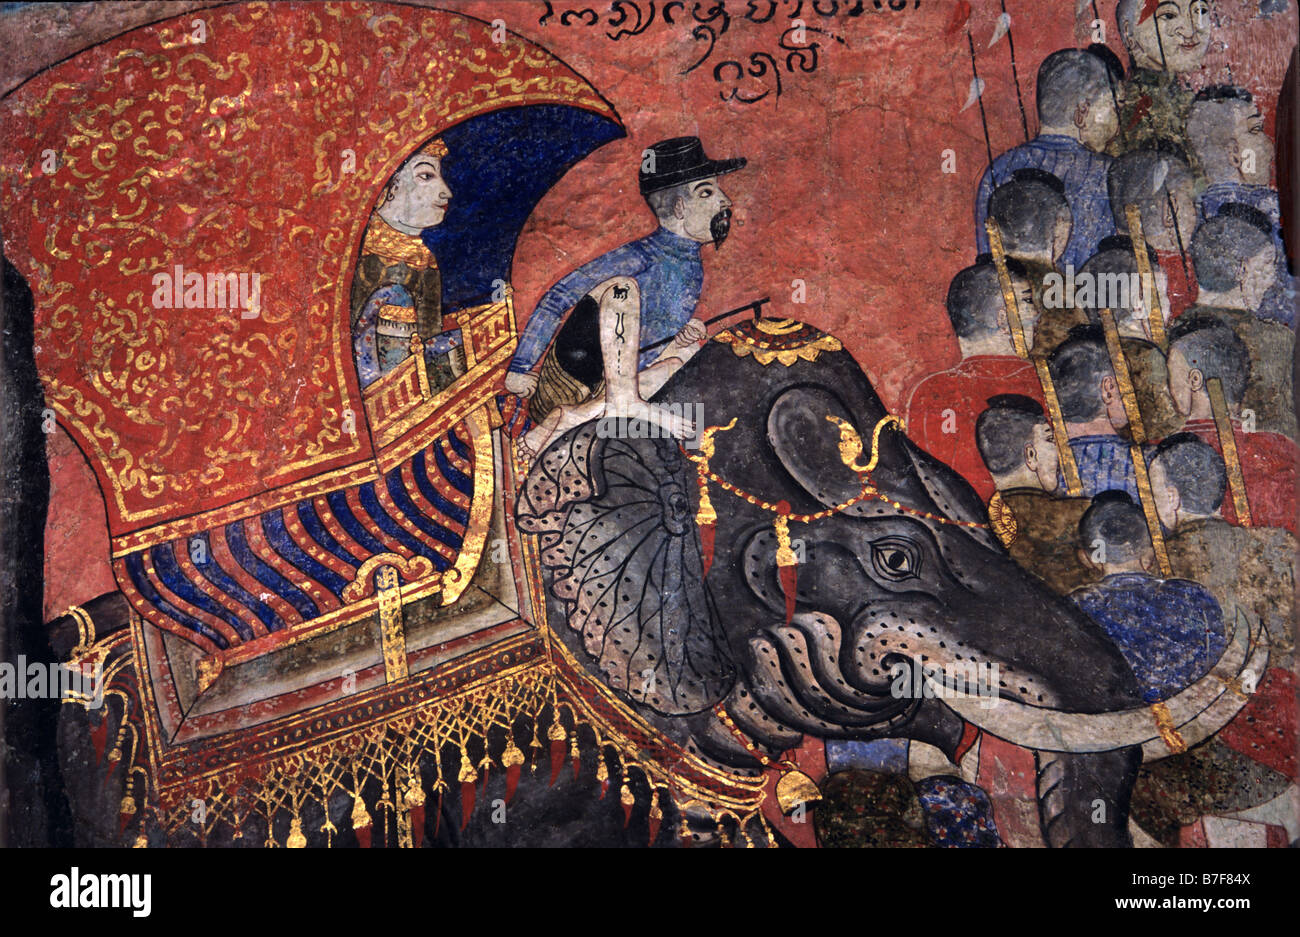 Thai Asian Elephant Used in Warfare & Soldiers, c19th Mural or Wall Paintings by Thit Buaphan, Wat Phumin Temple, - Stock Image